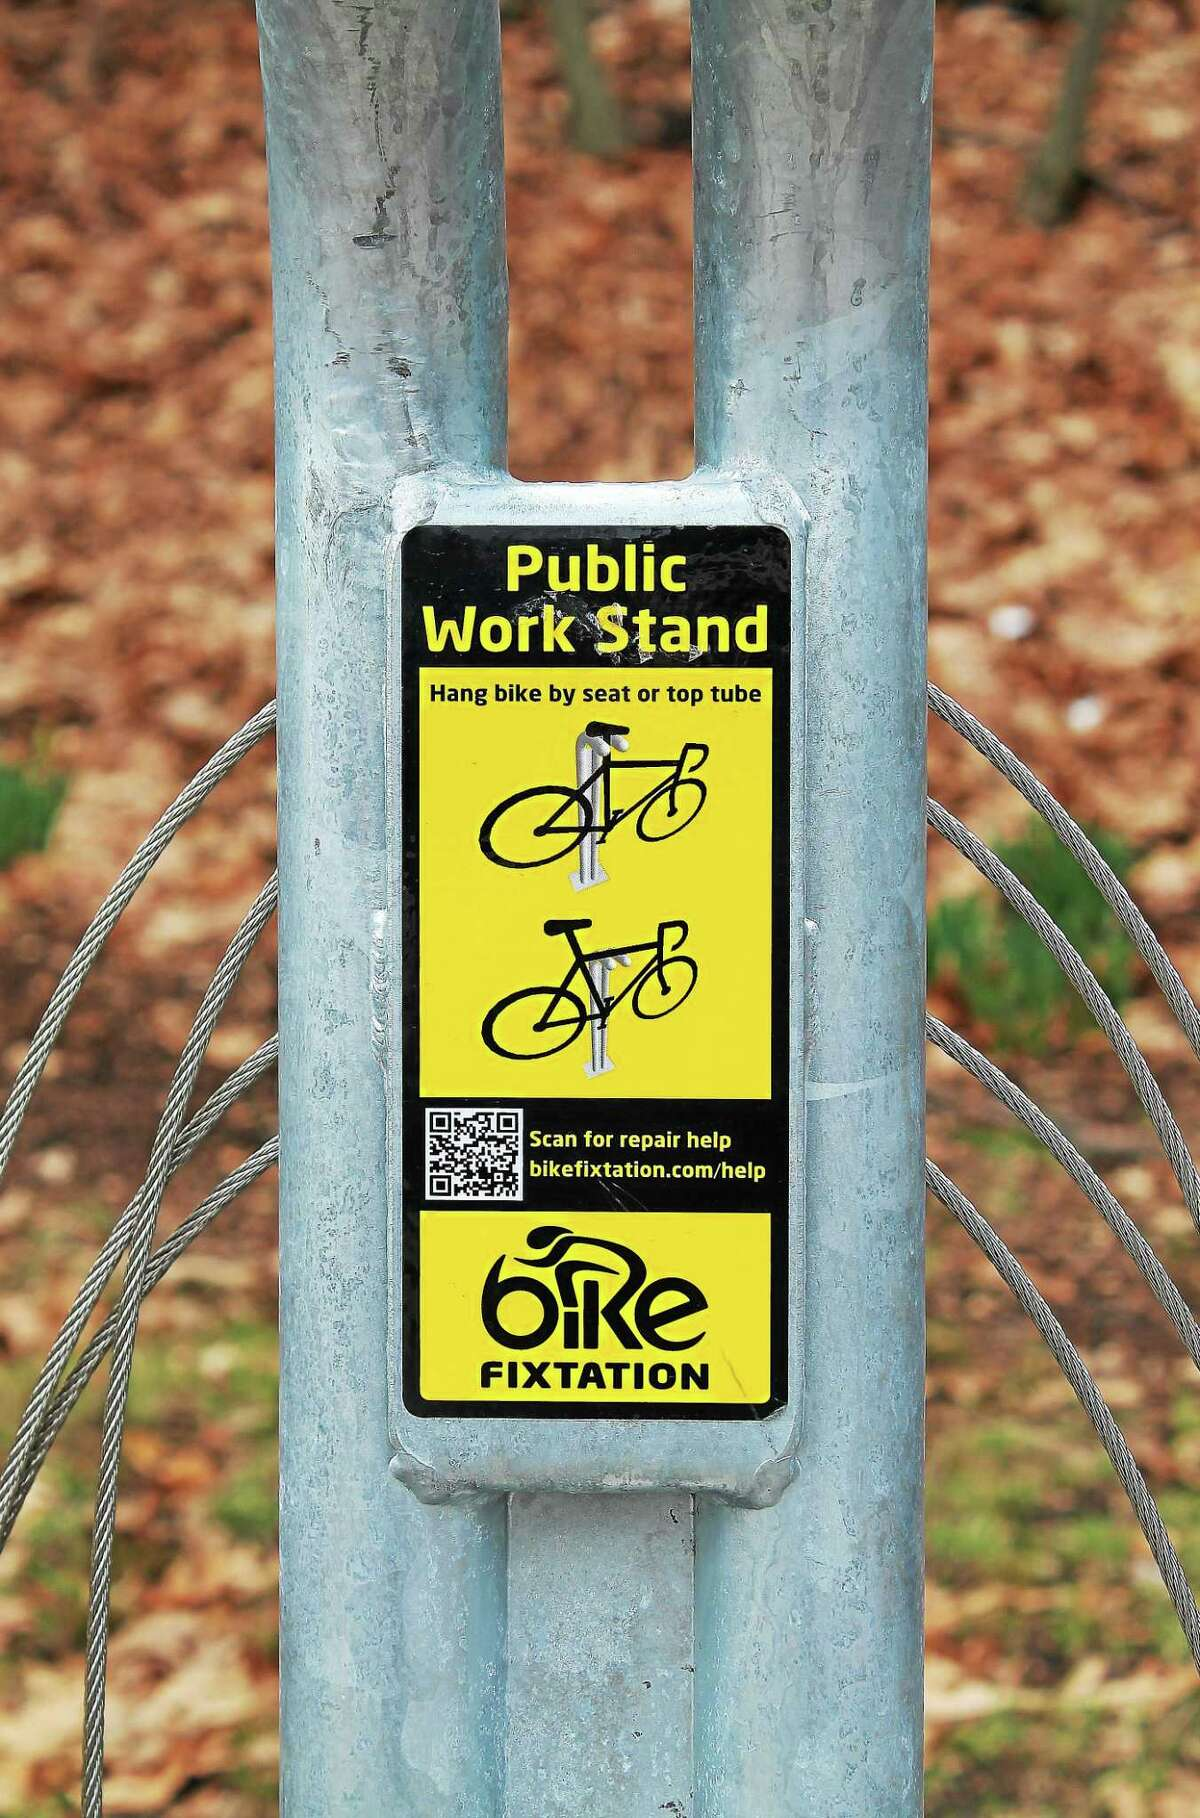 FILE PHOTO Several self-help bicycle maintenance stations called Fixtations are available around the city, like this one in East Rock Park.